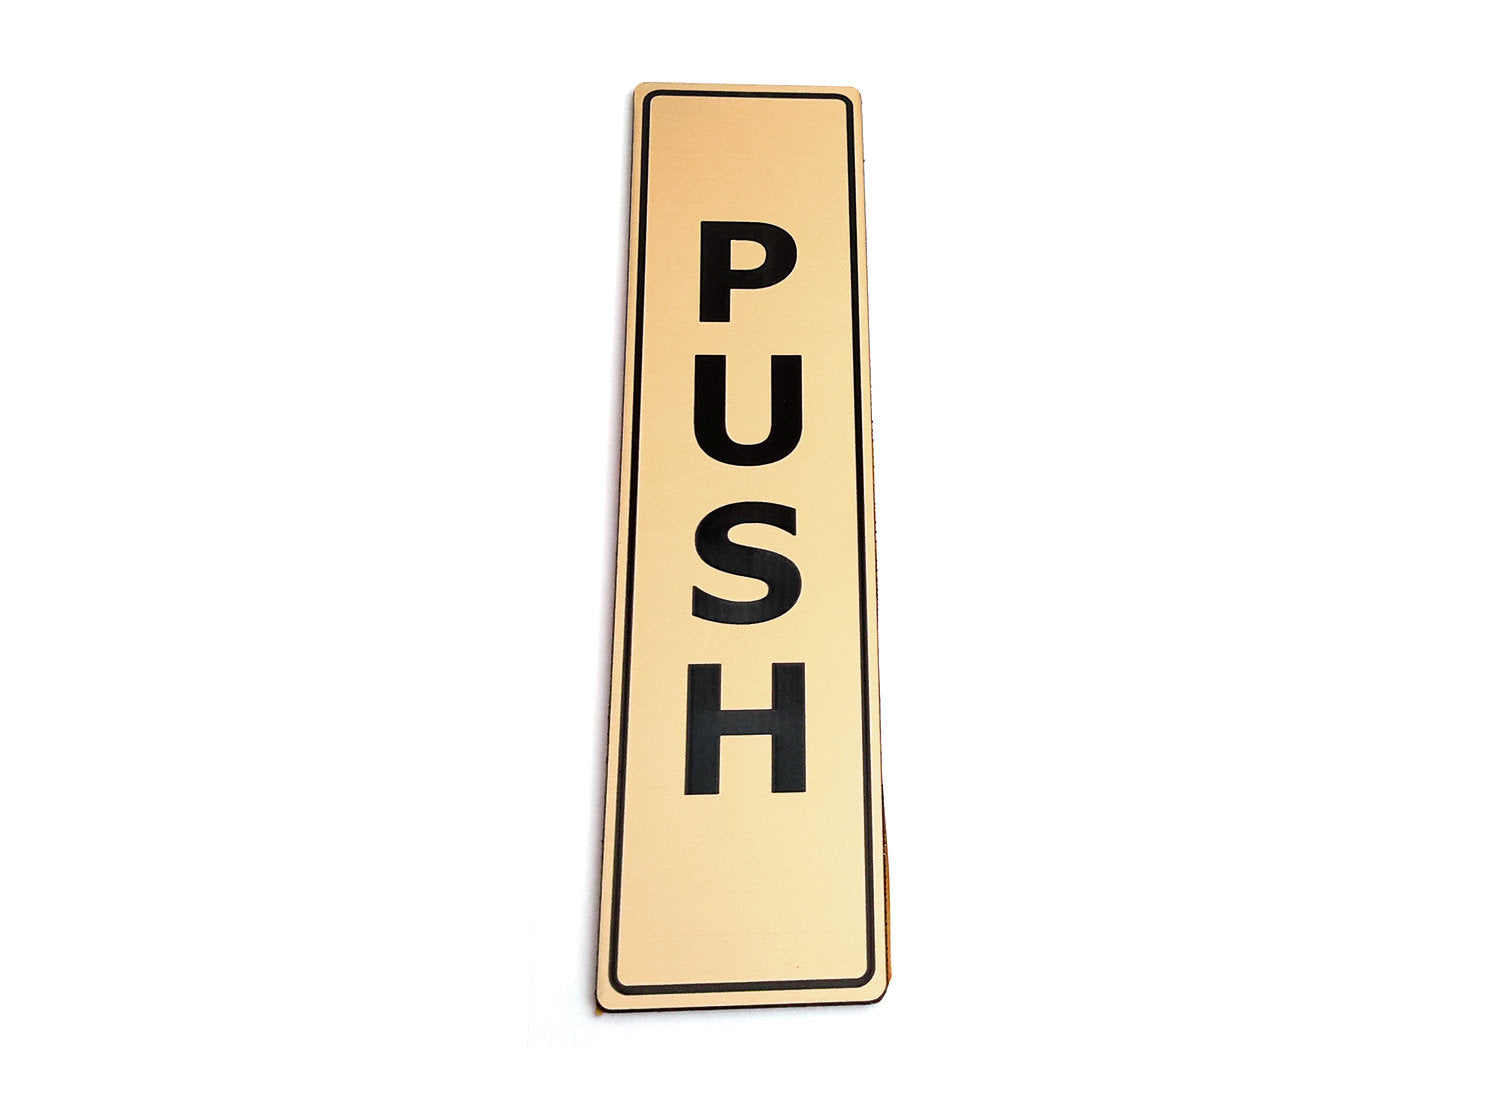 PUSH - Adhesive, Gold, Door Sign, - for business, restaurants, bars, hotels, schools, cafe